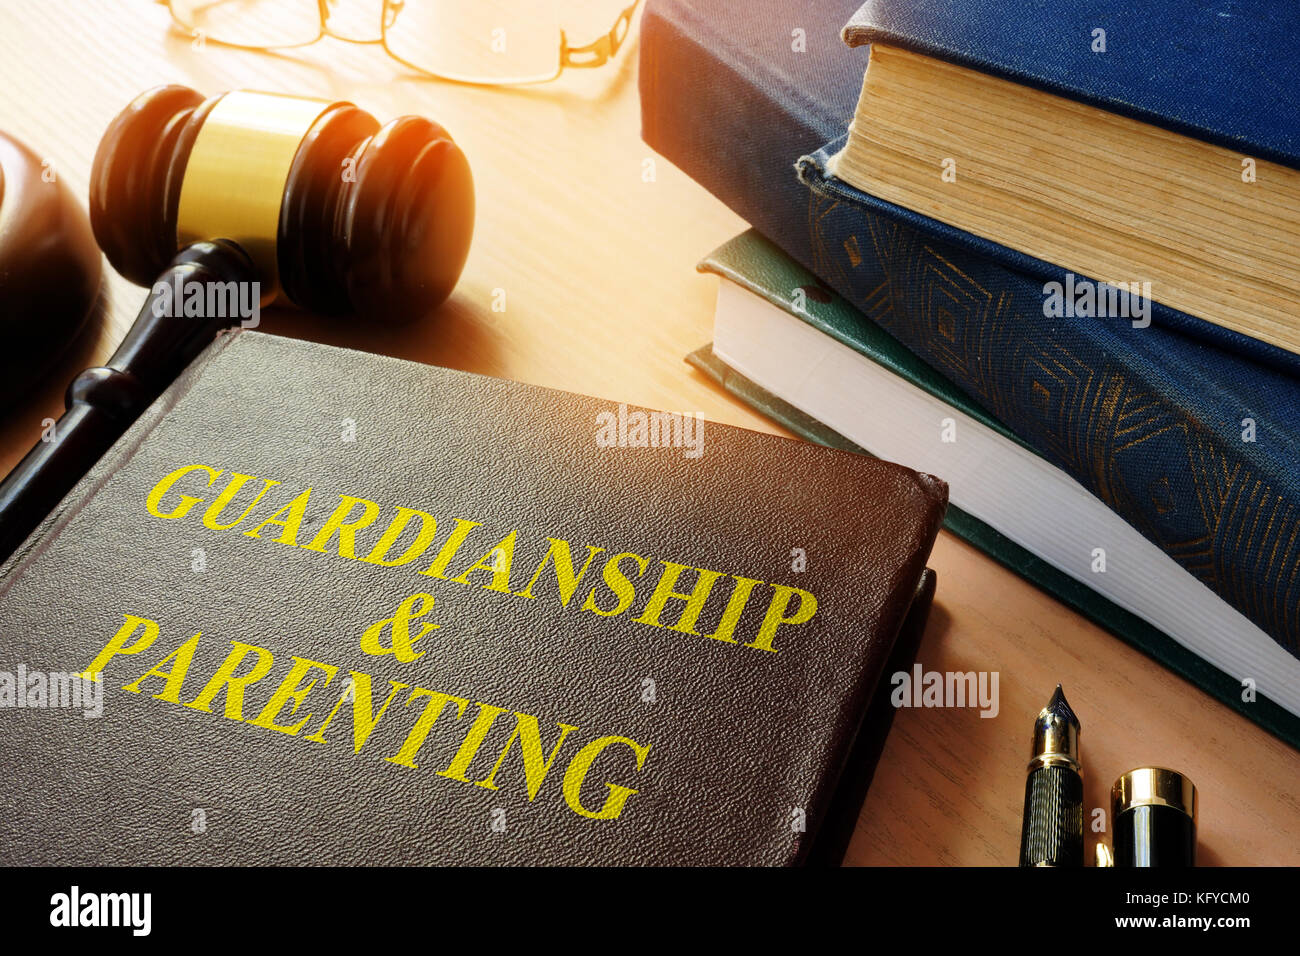 Book about Guardianship & Parenting on a table. - Stock Image